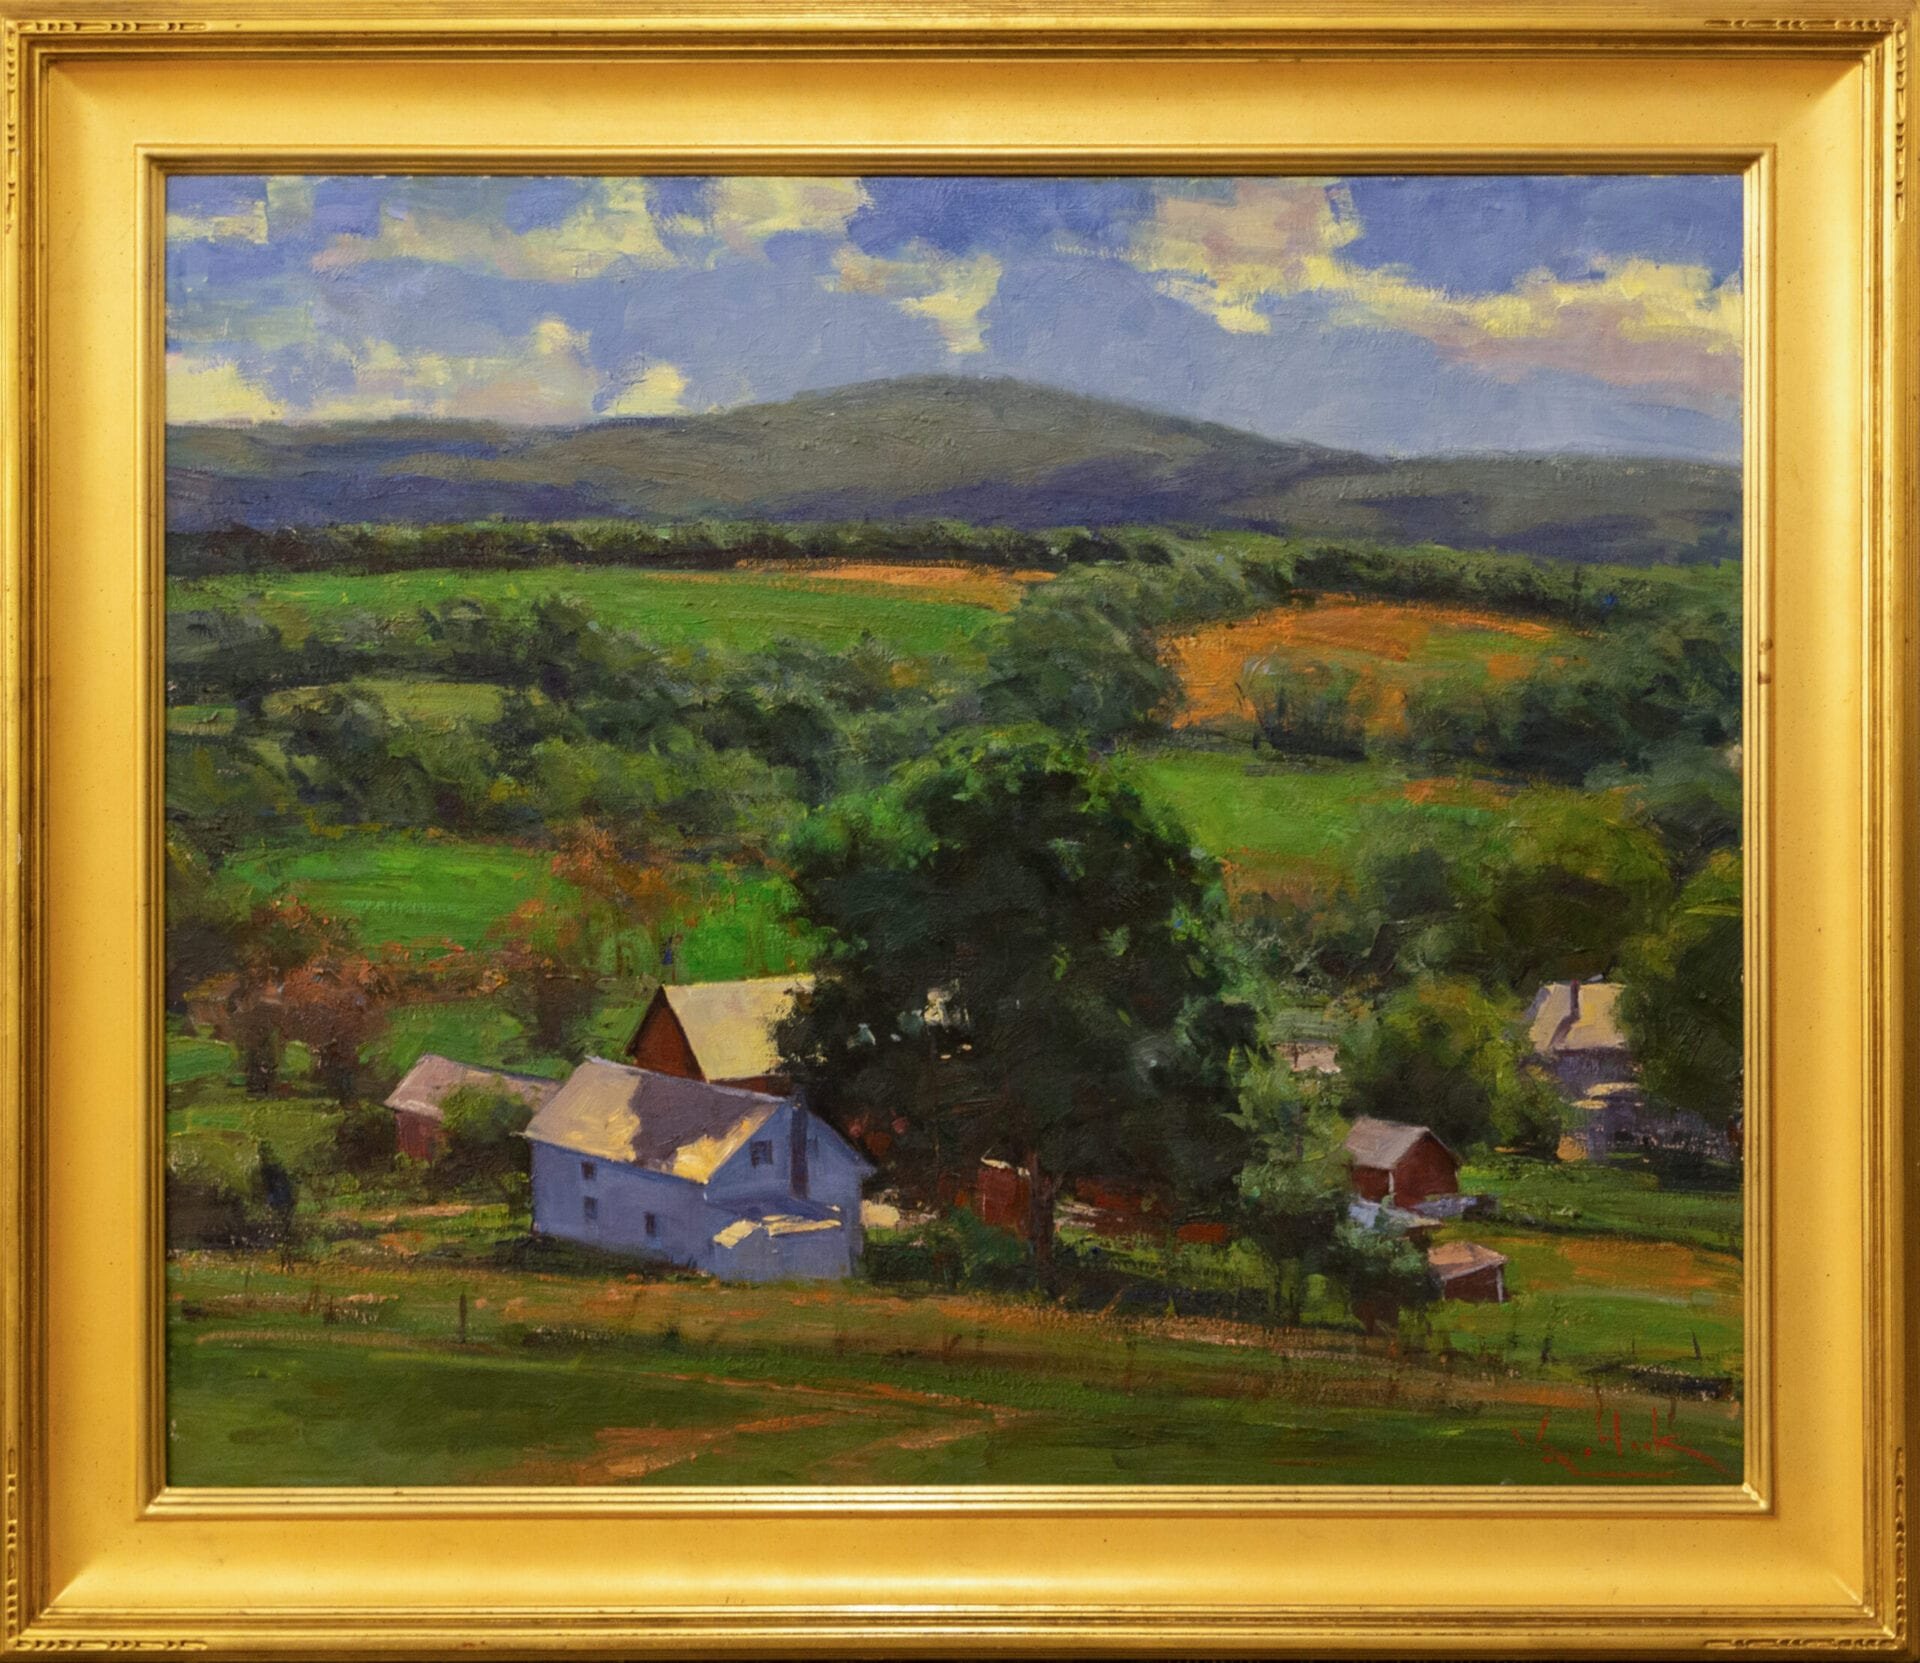 The Farm | George Van Hook | Oil | 30 x 36""